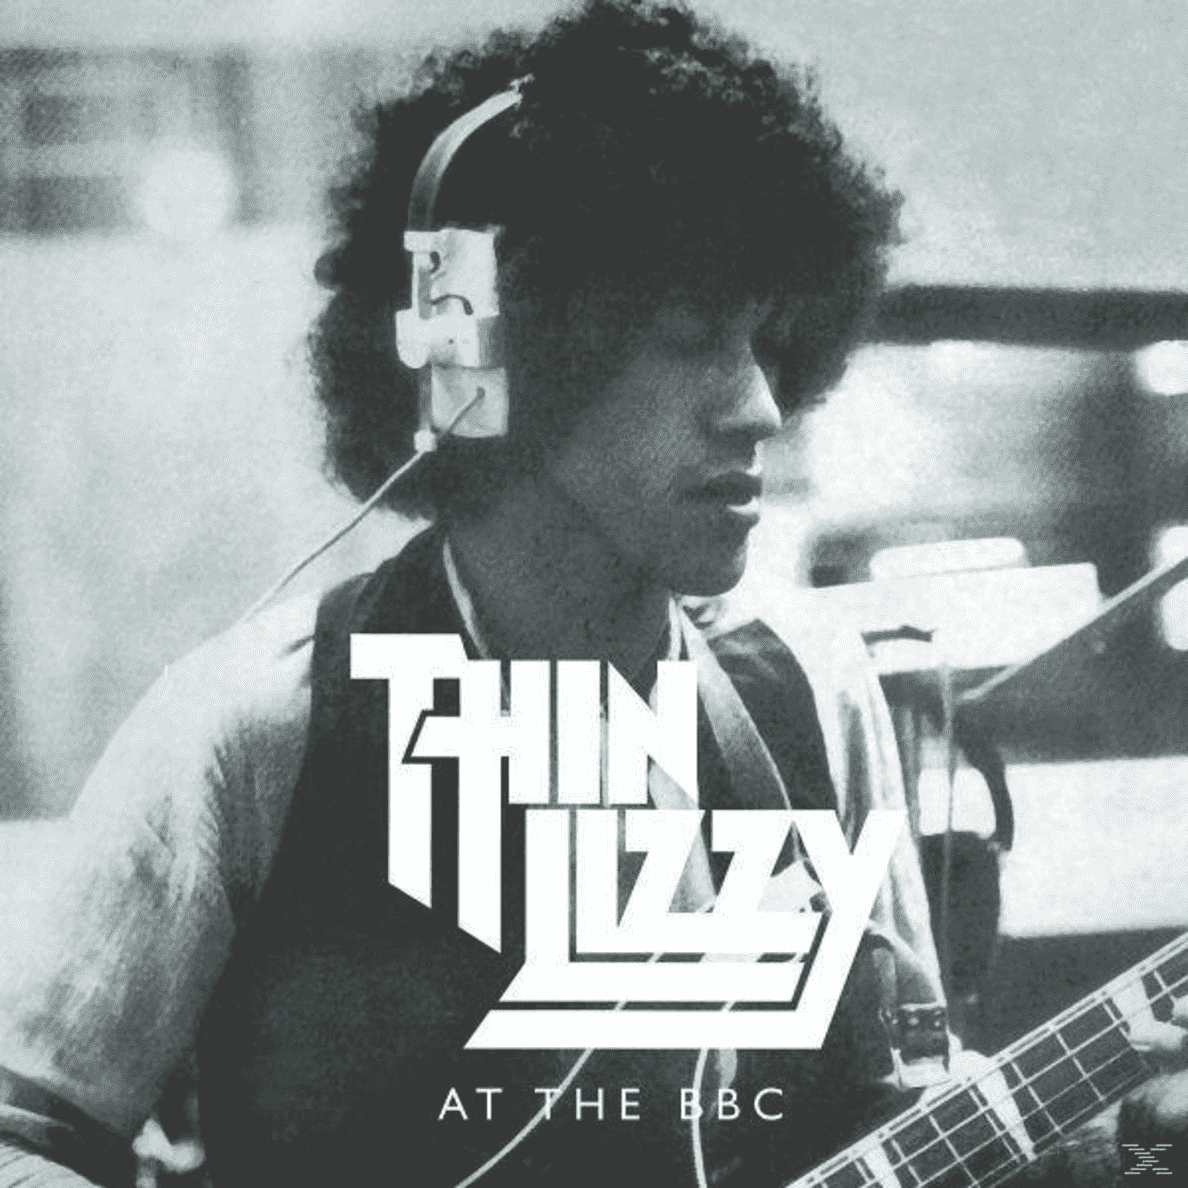 Live At The Bbc Thin Lizzy auf CD